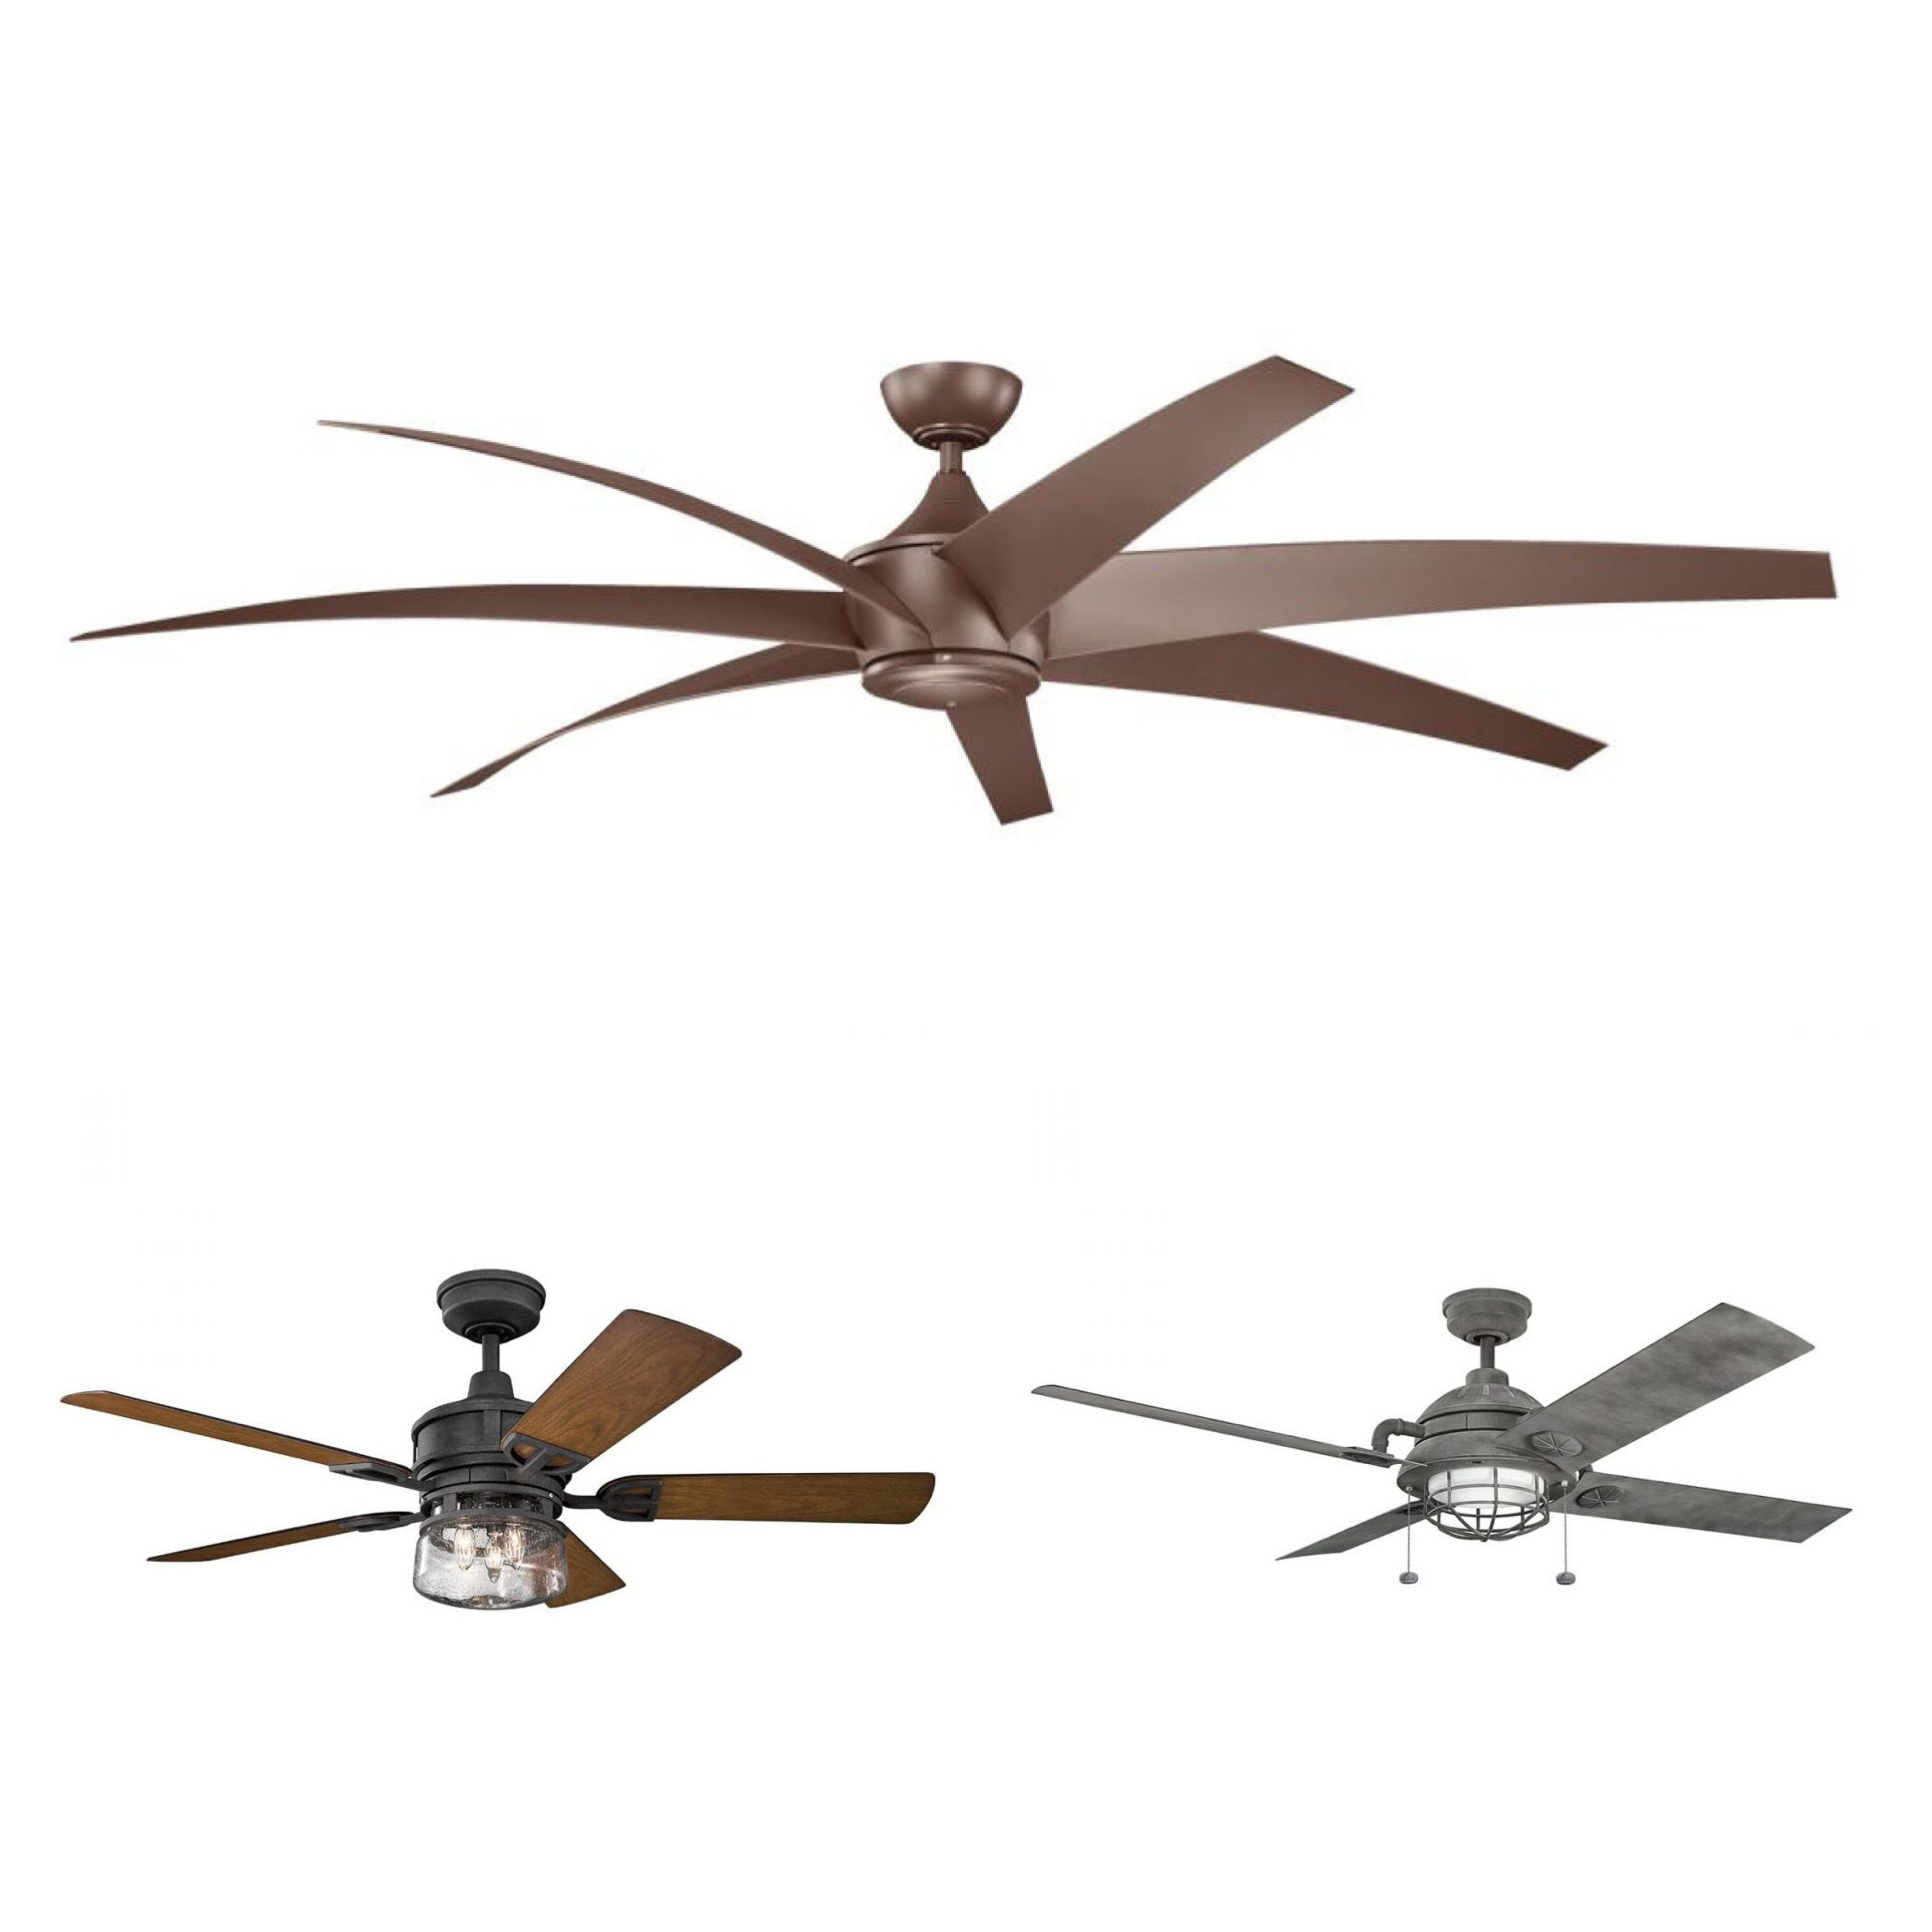 Mo56ob With Images Ceiling Fan Contemporary Ceiling Fans Craftsman Ceiling Fans